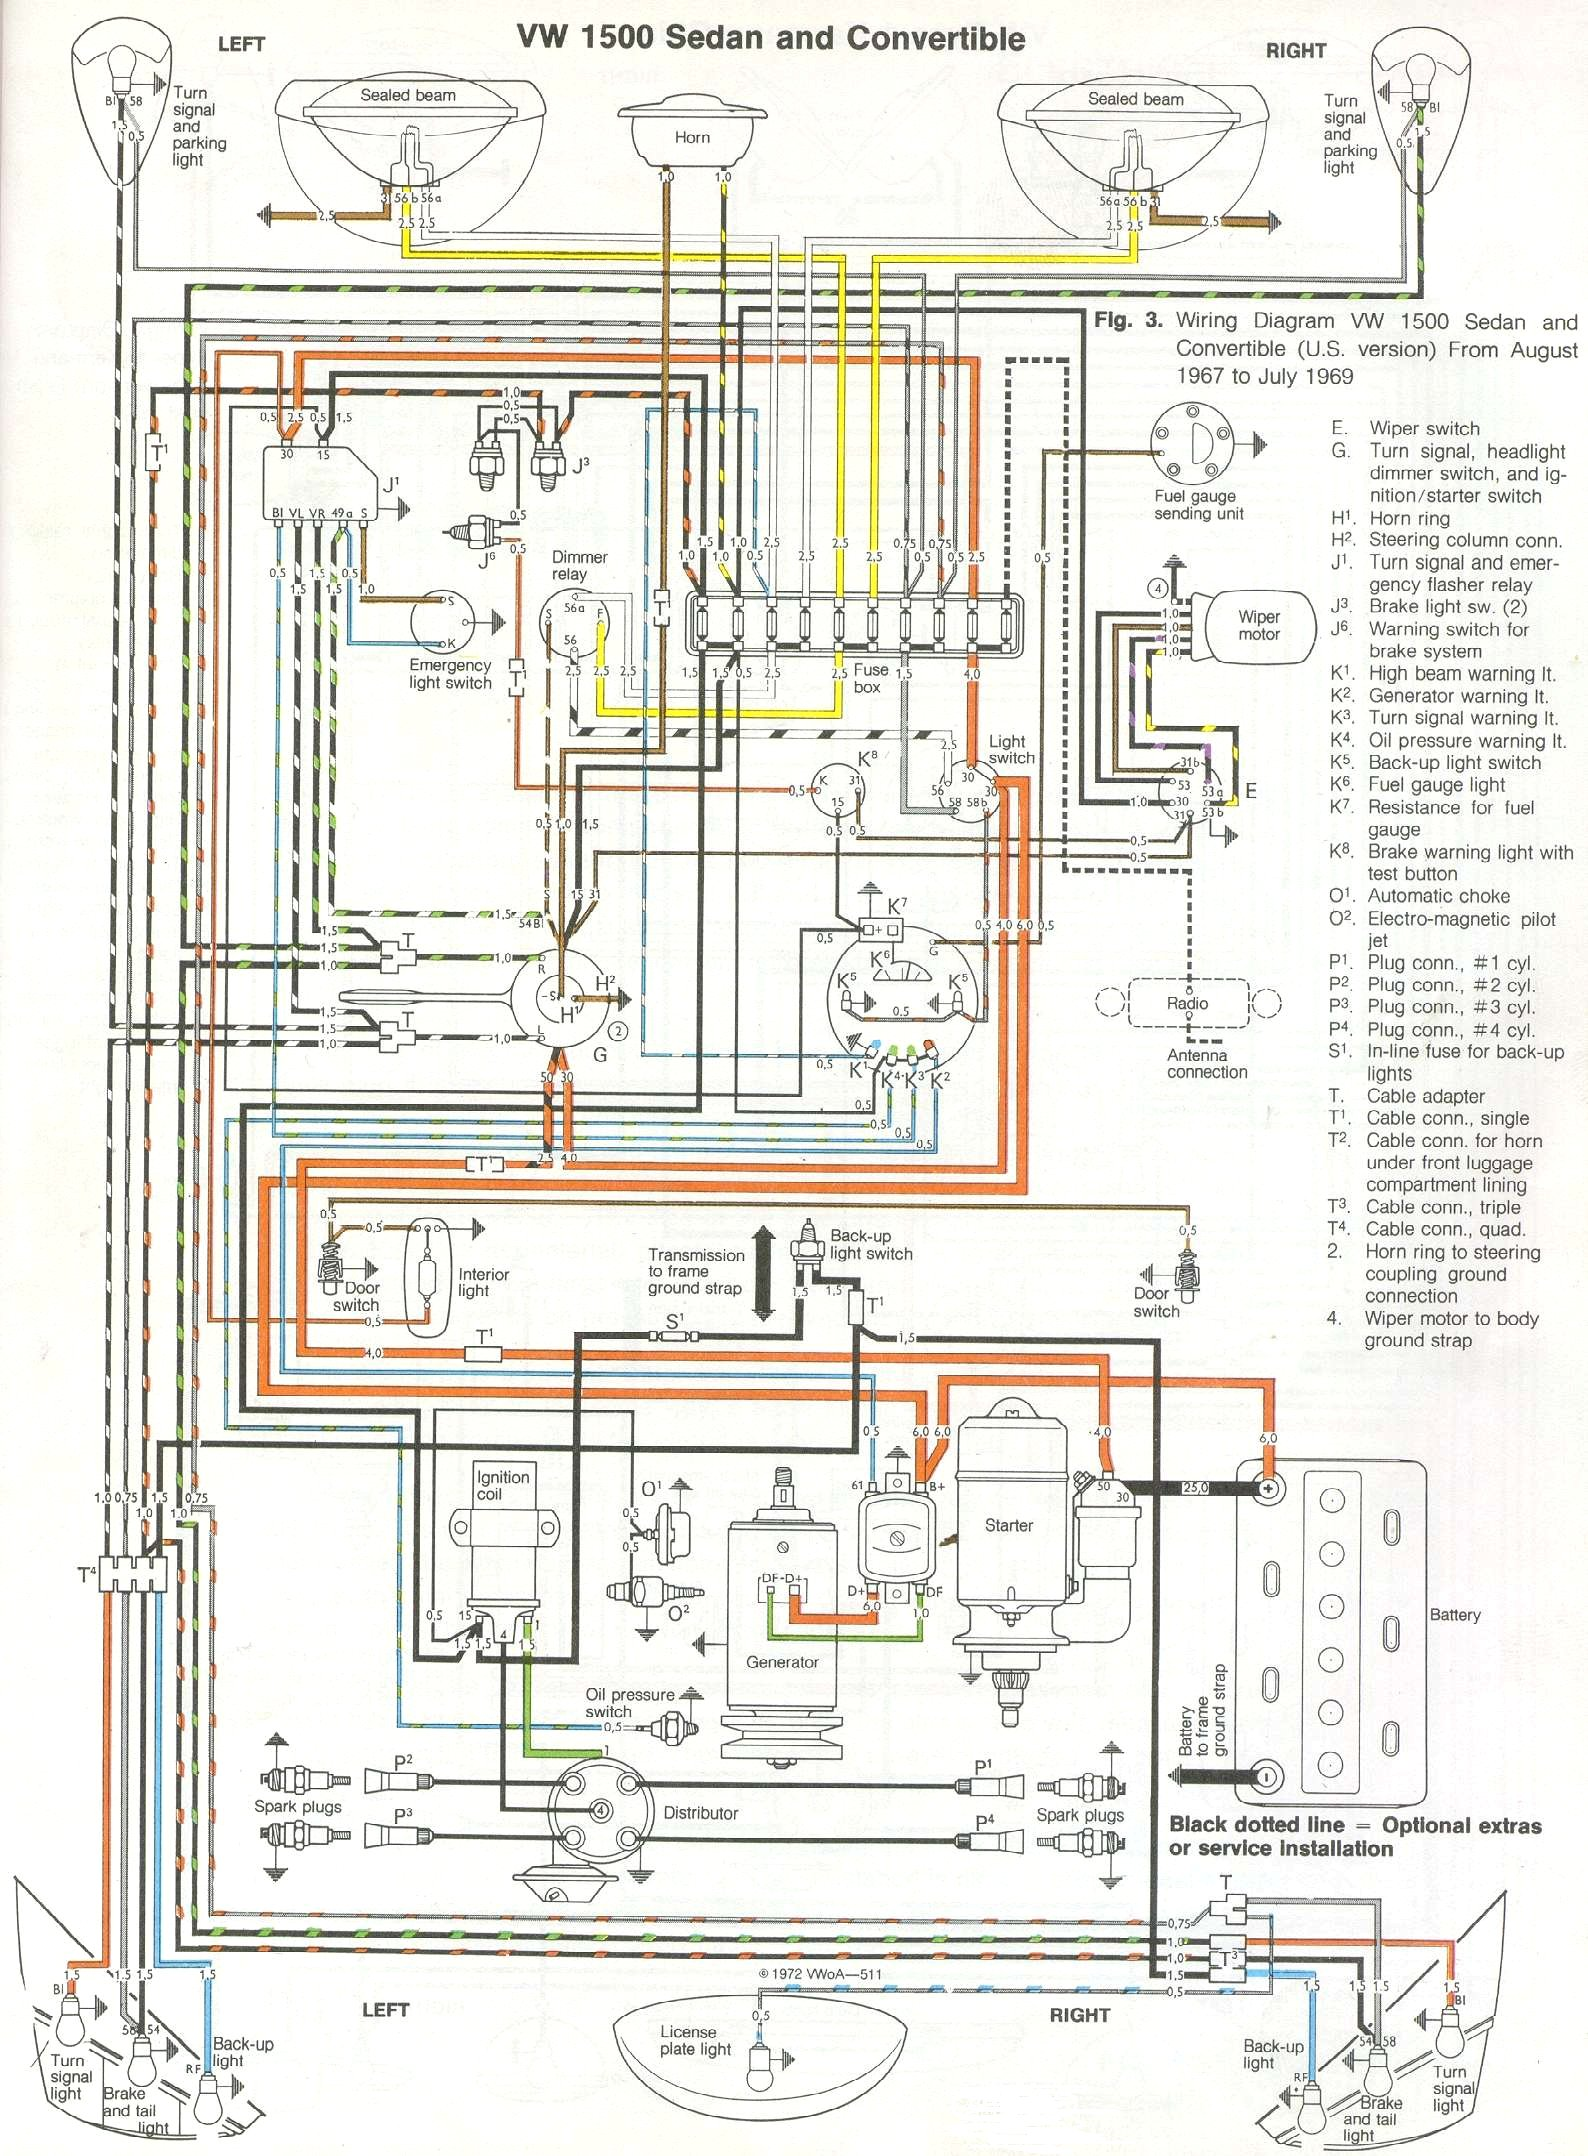 bug_6869 1969 71 beetle wiring diagram thegoldenbug com 1970 vw bug wiring diagram at bayanpartner.co